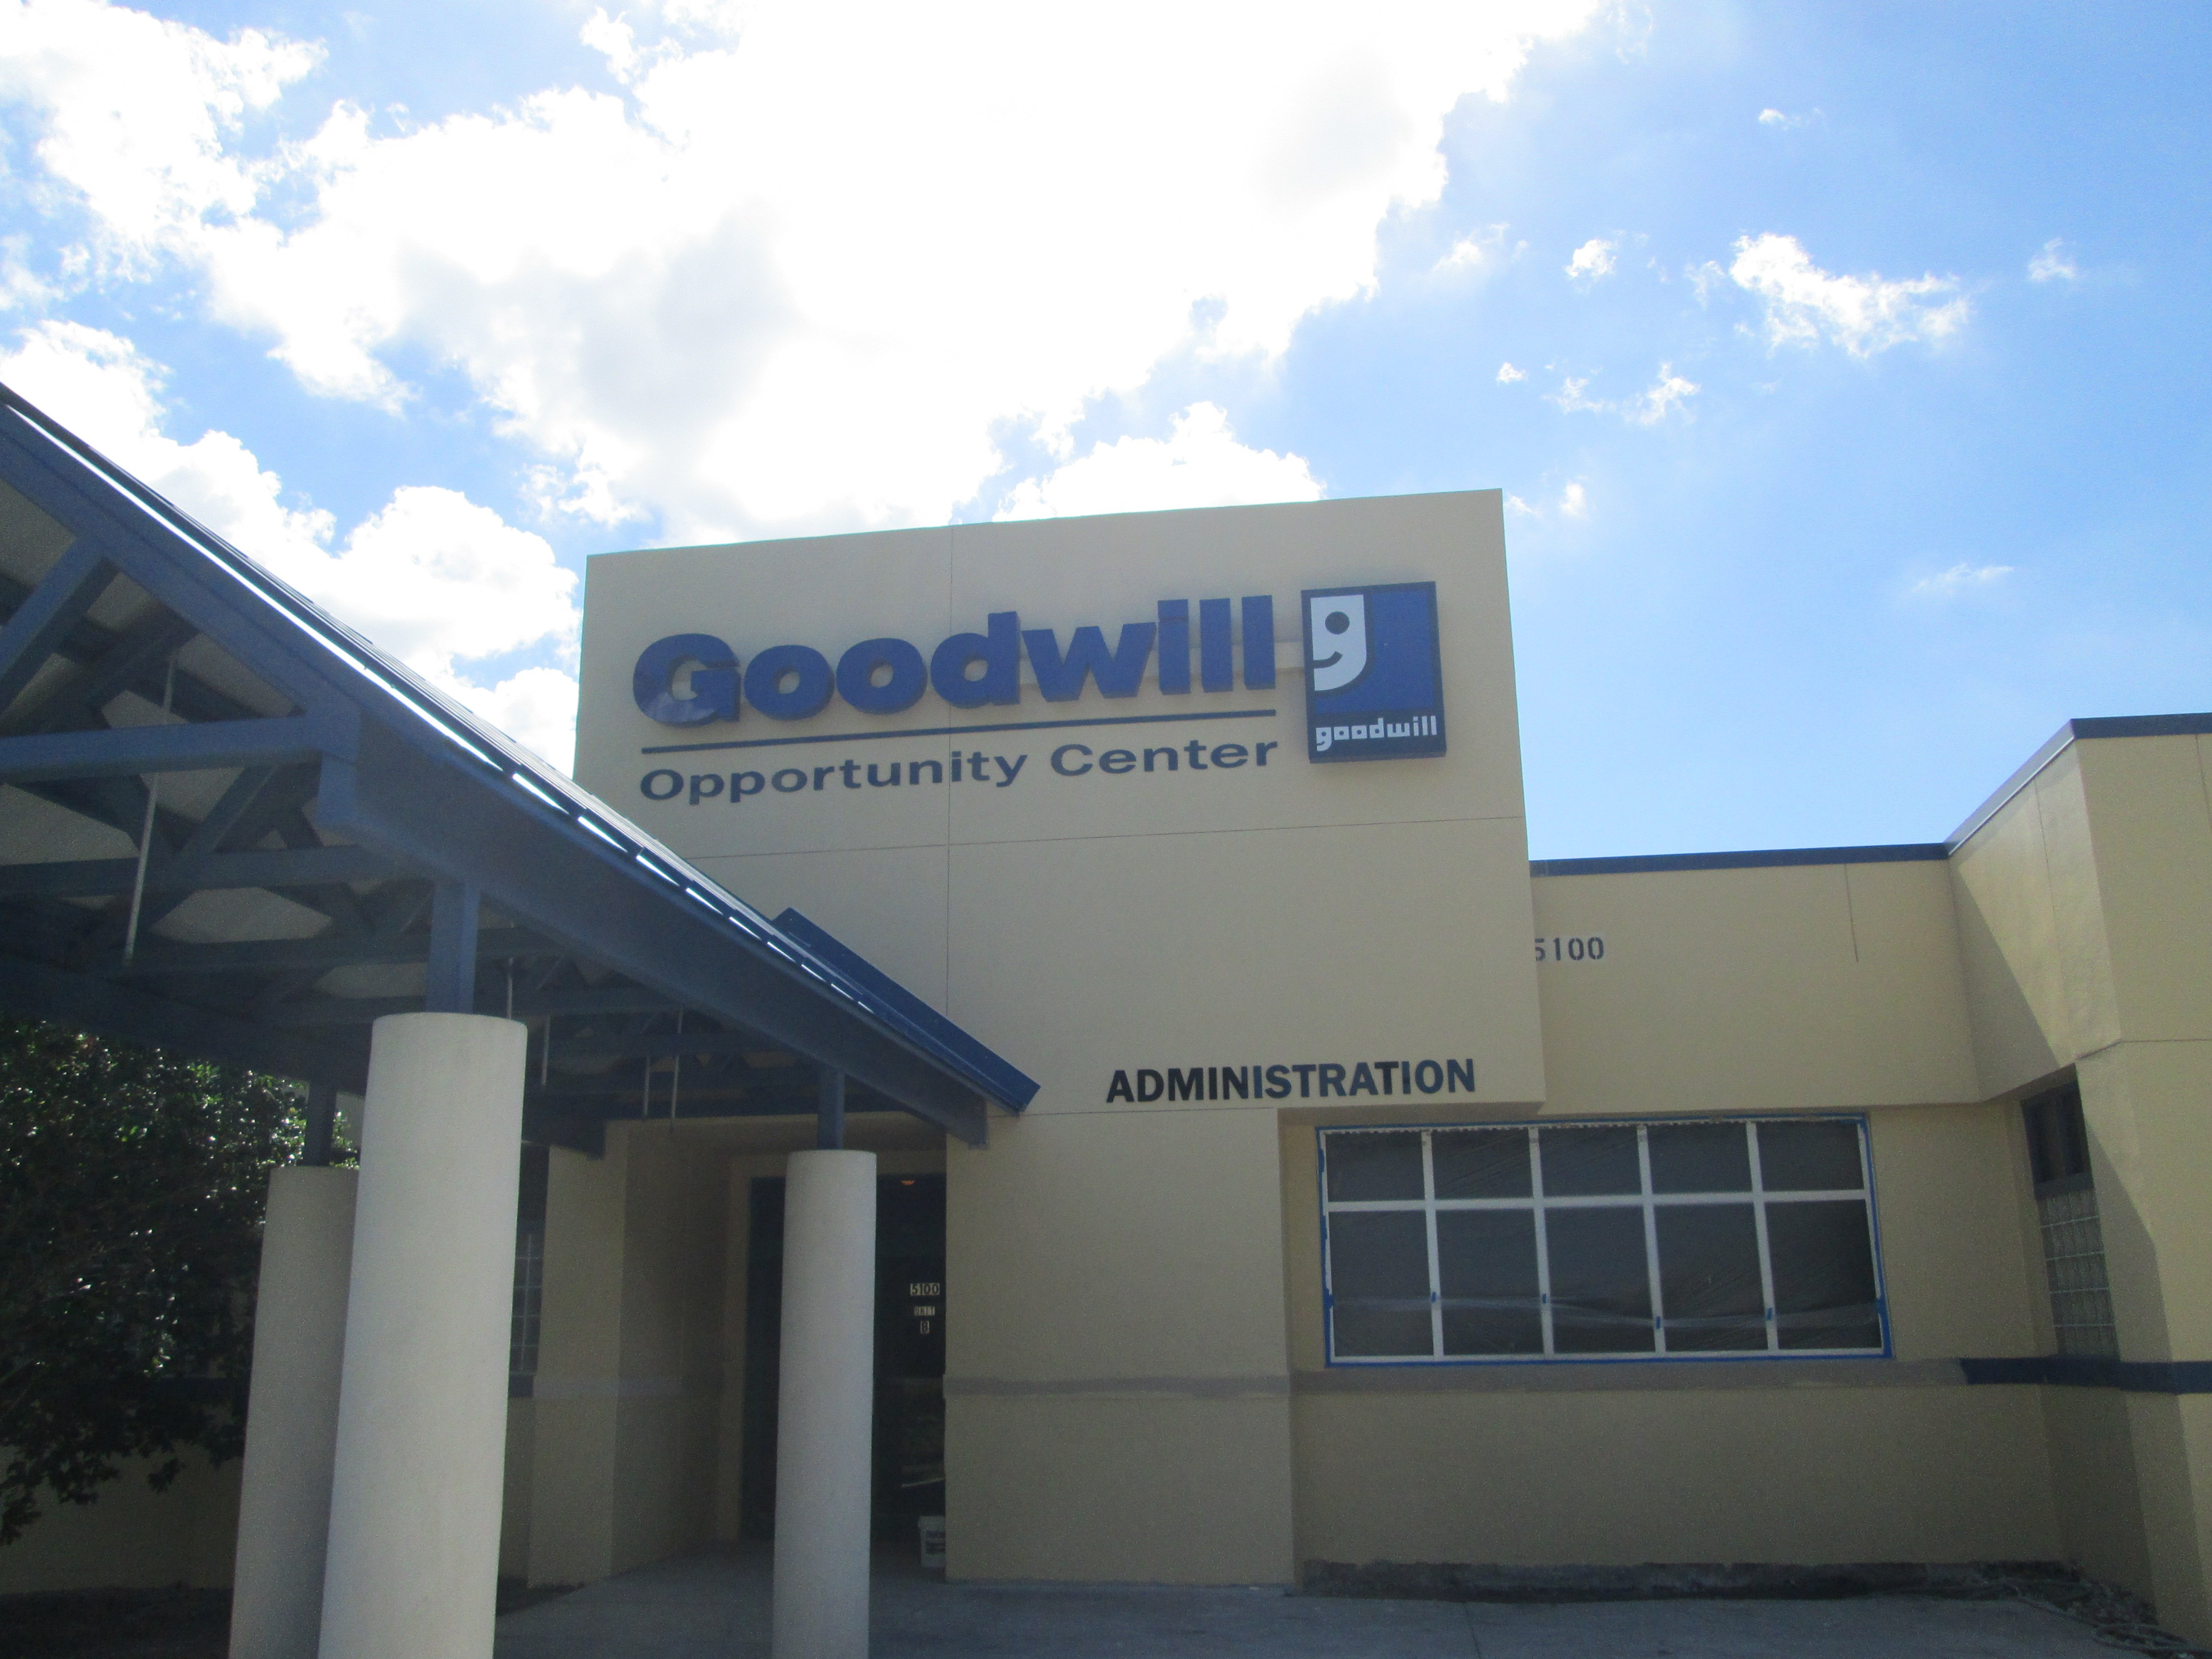 Goodwill Tice, Ft. Myers, FL by Lee Designs